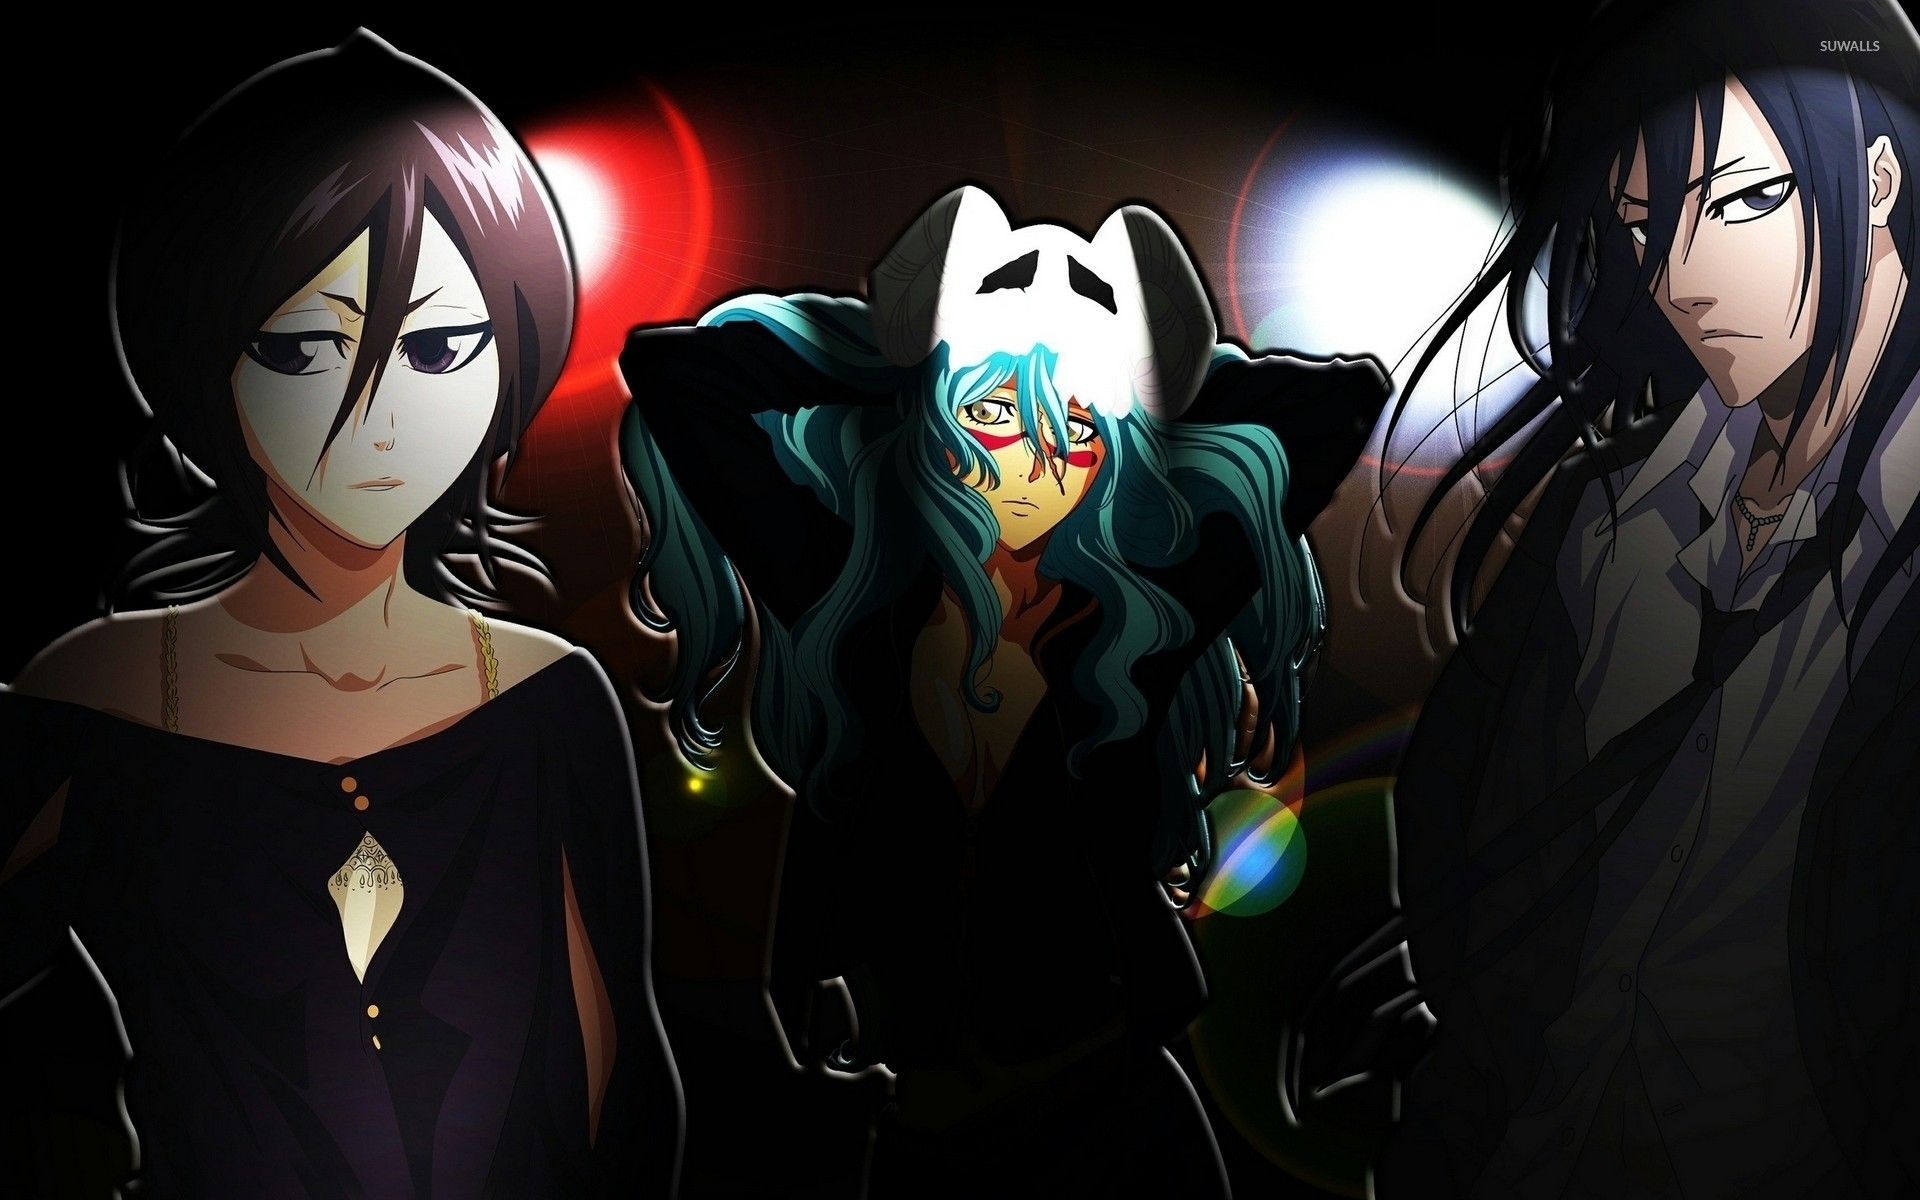 1920x1200 Rukia, Nelliel and Byakuya - Bleach wallpaper